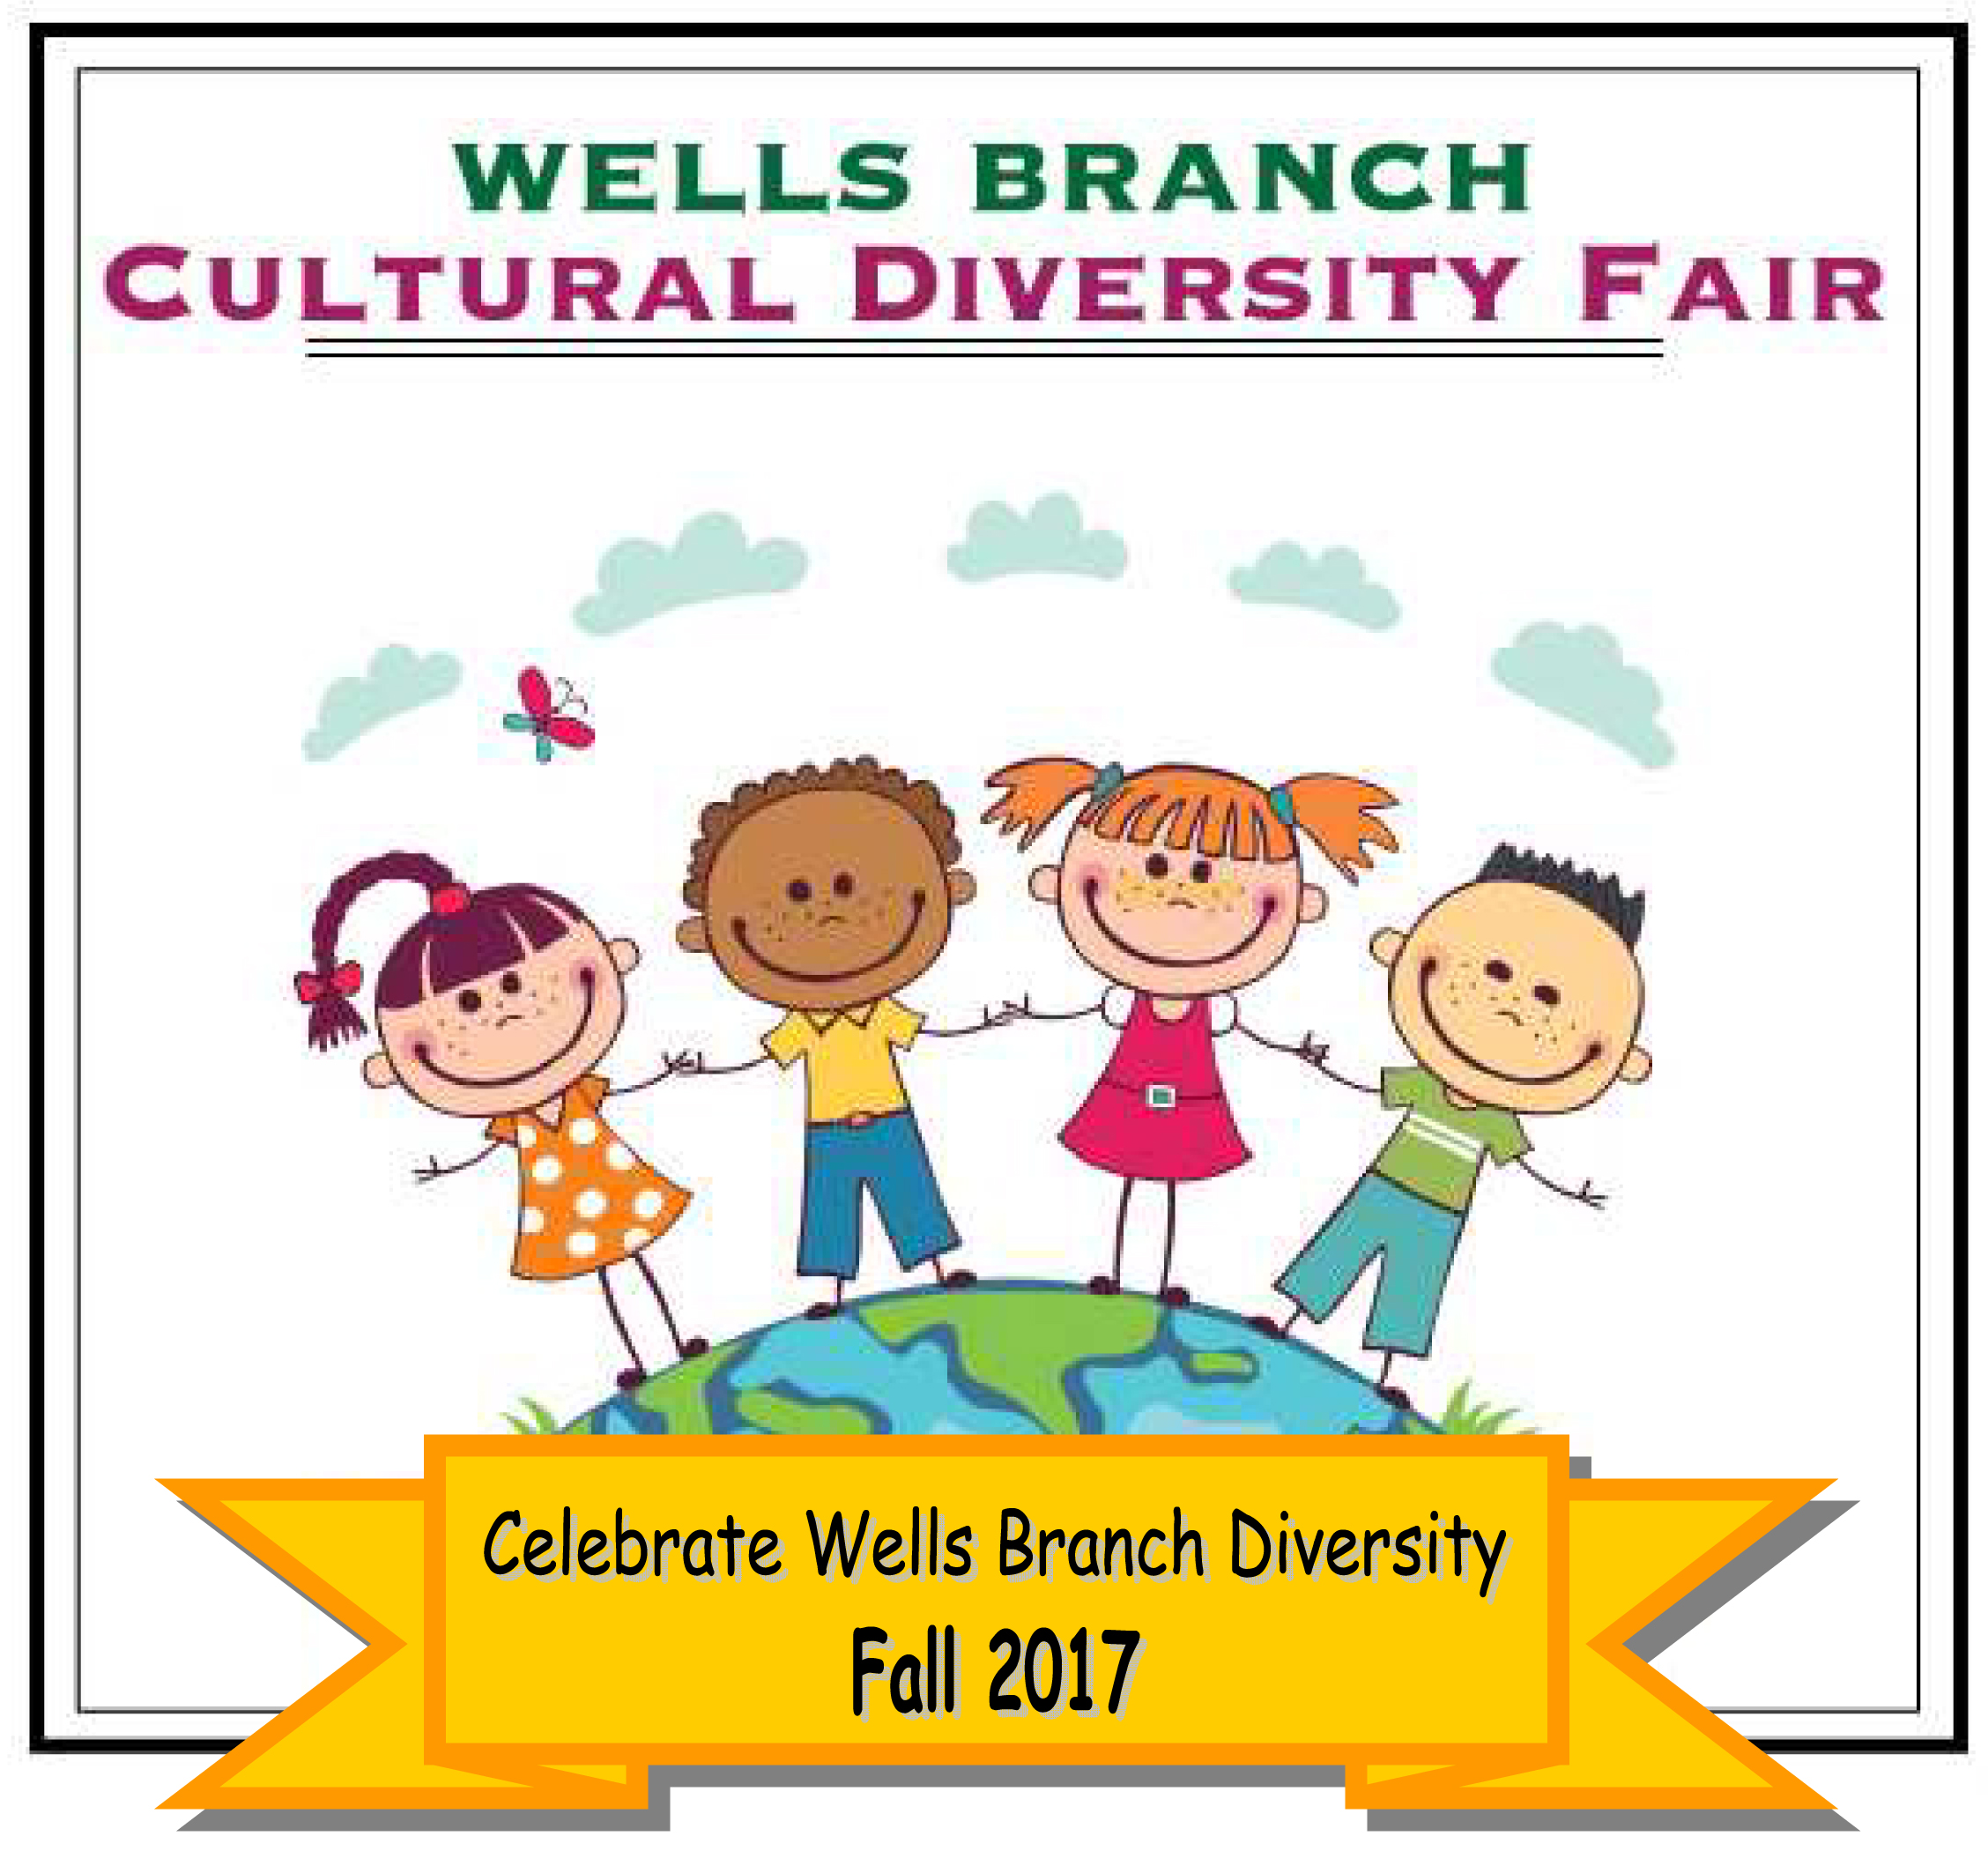 cultural-diversity-fair-logo-copy